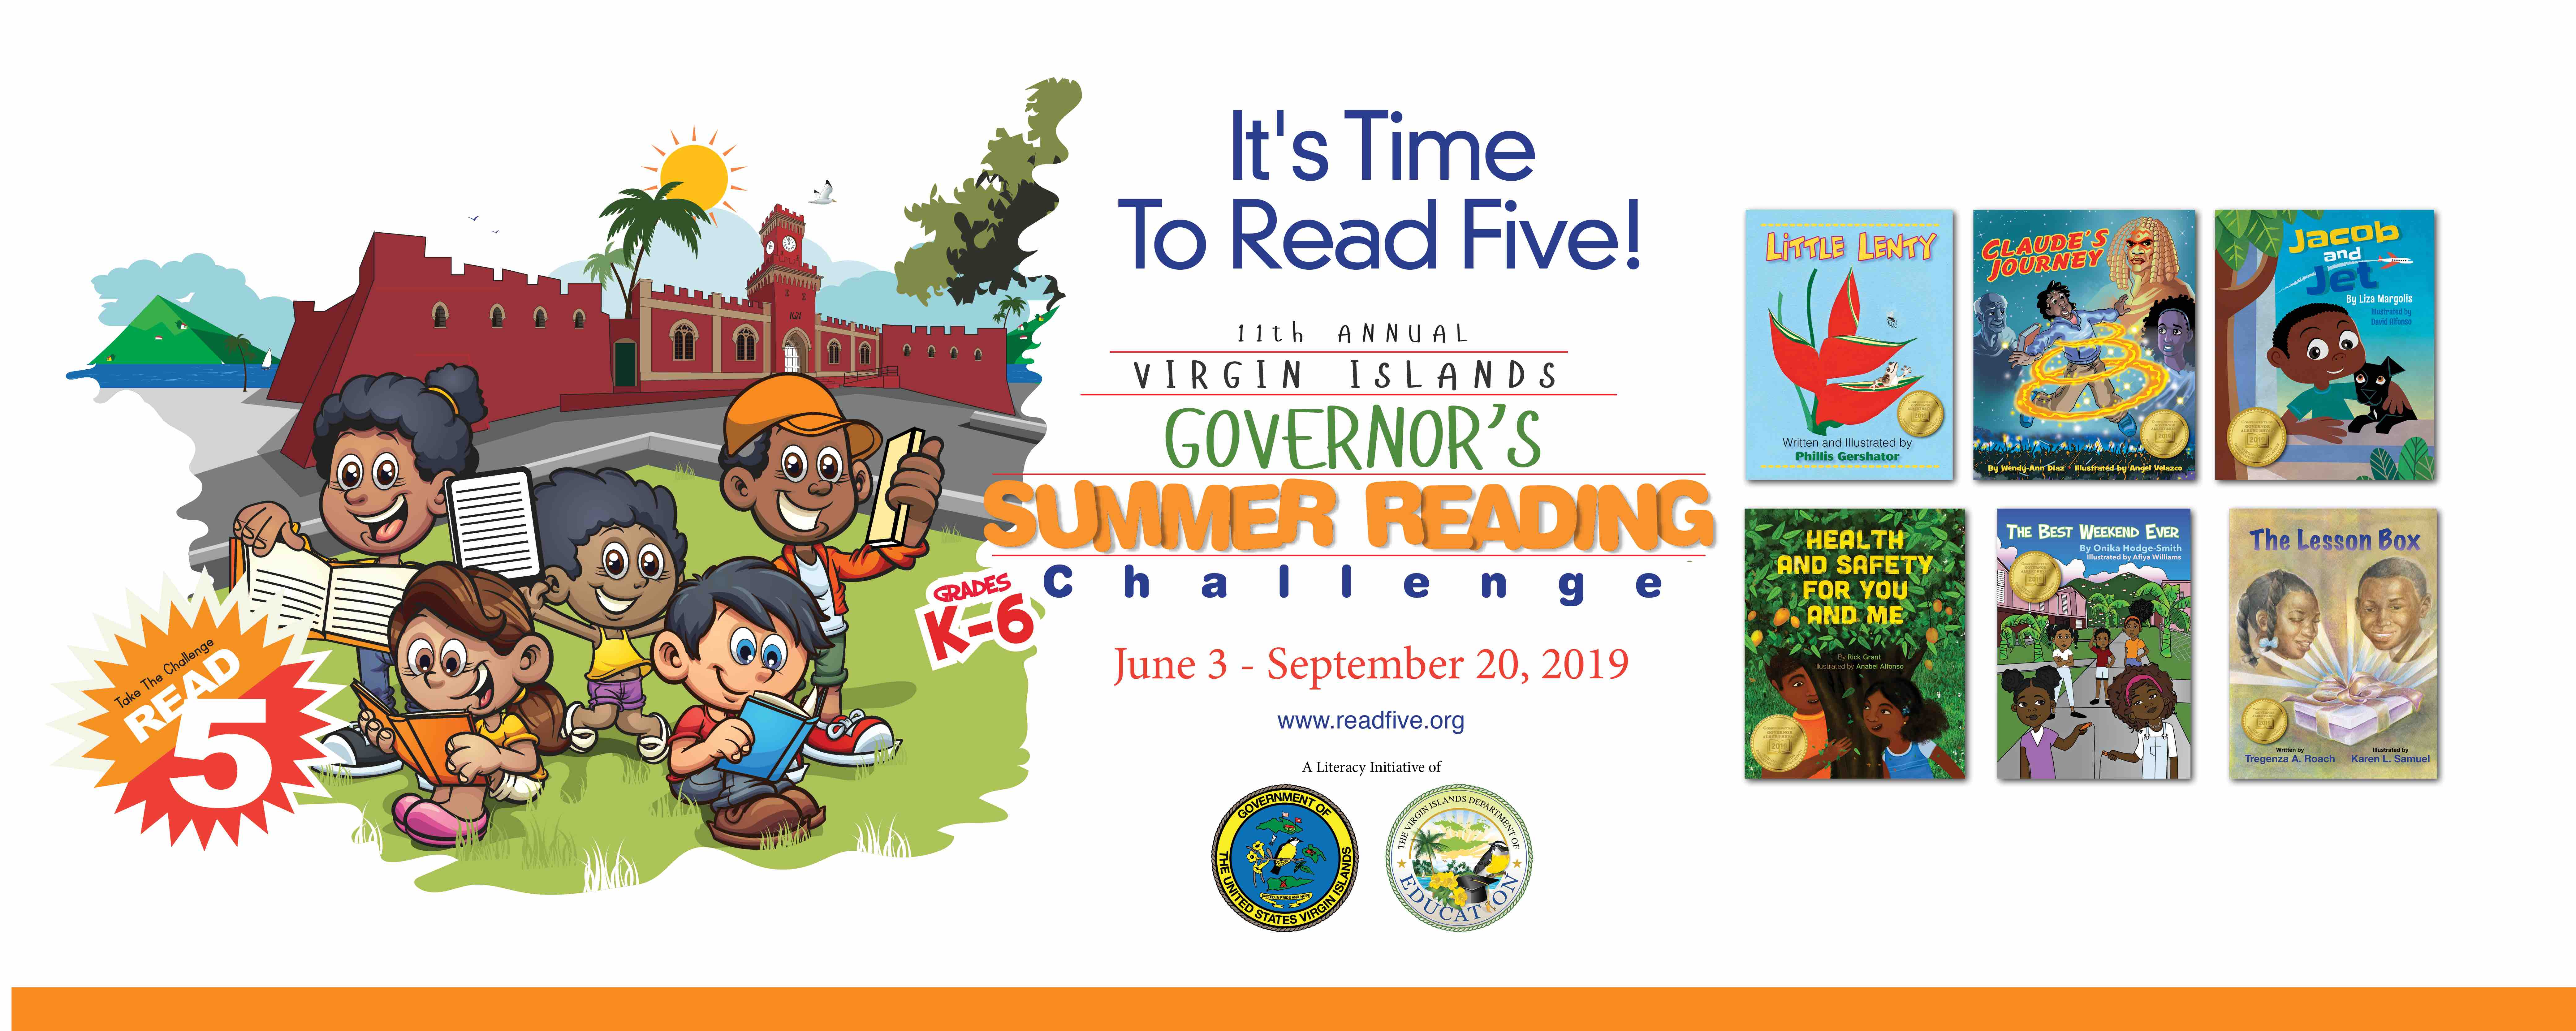 It's Time To Read Five!